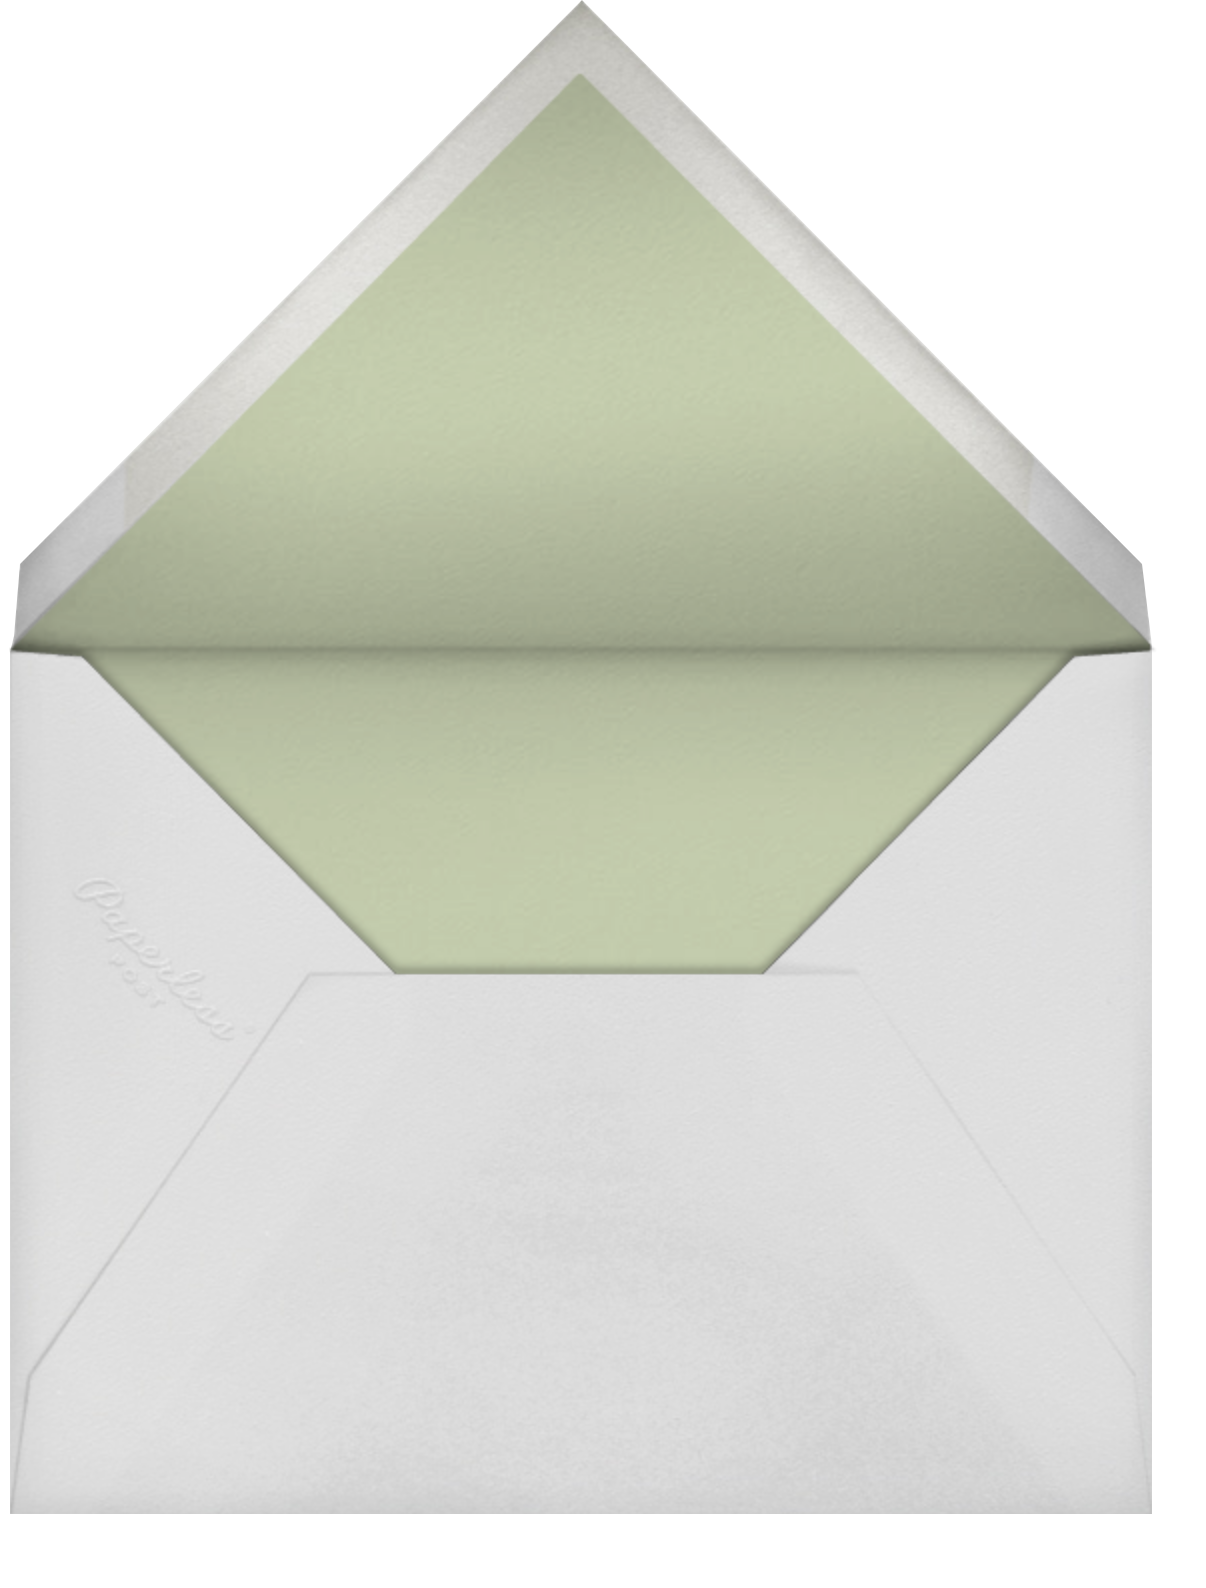 Gradient Border - Green - Paperless Post - null - envelope back